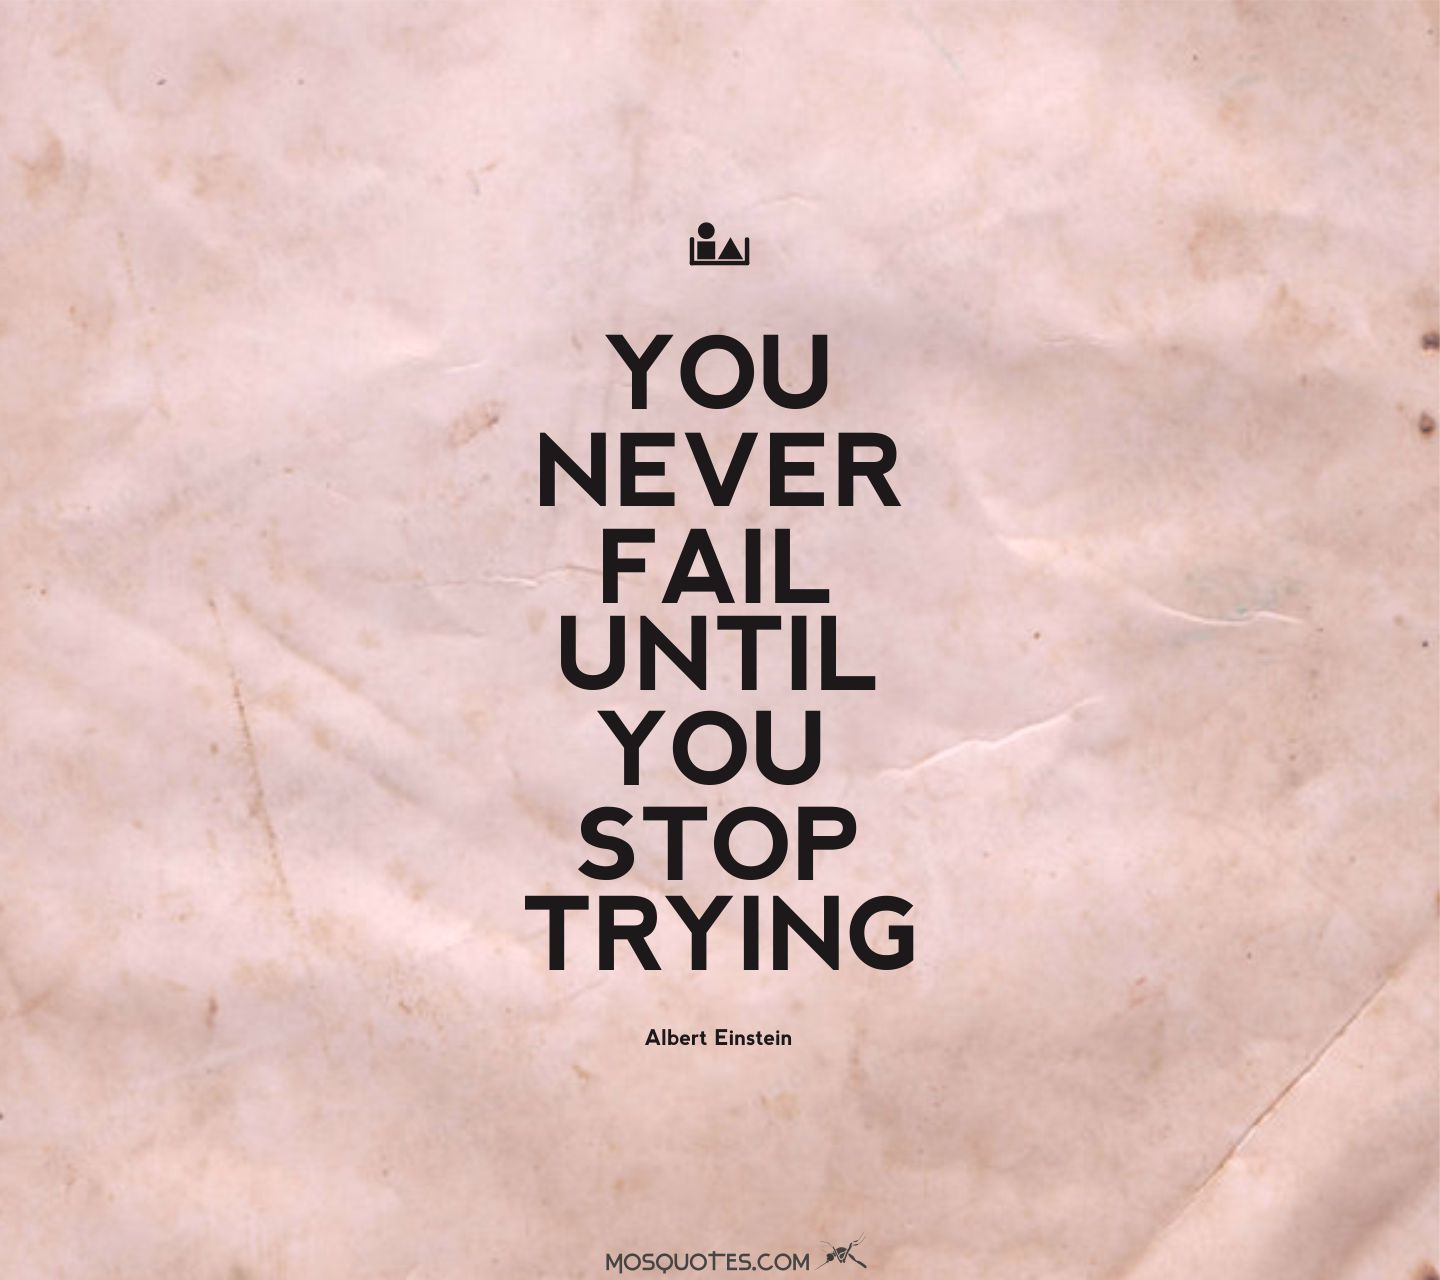 Inspirational Quotes About Failure: Unless You Try You Will Never Know Quotes. QuotesGram